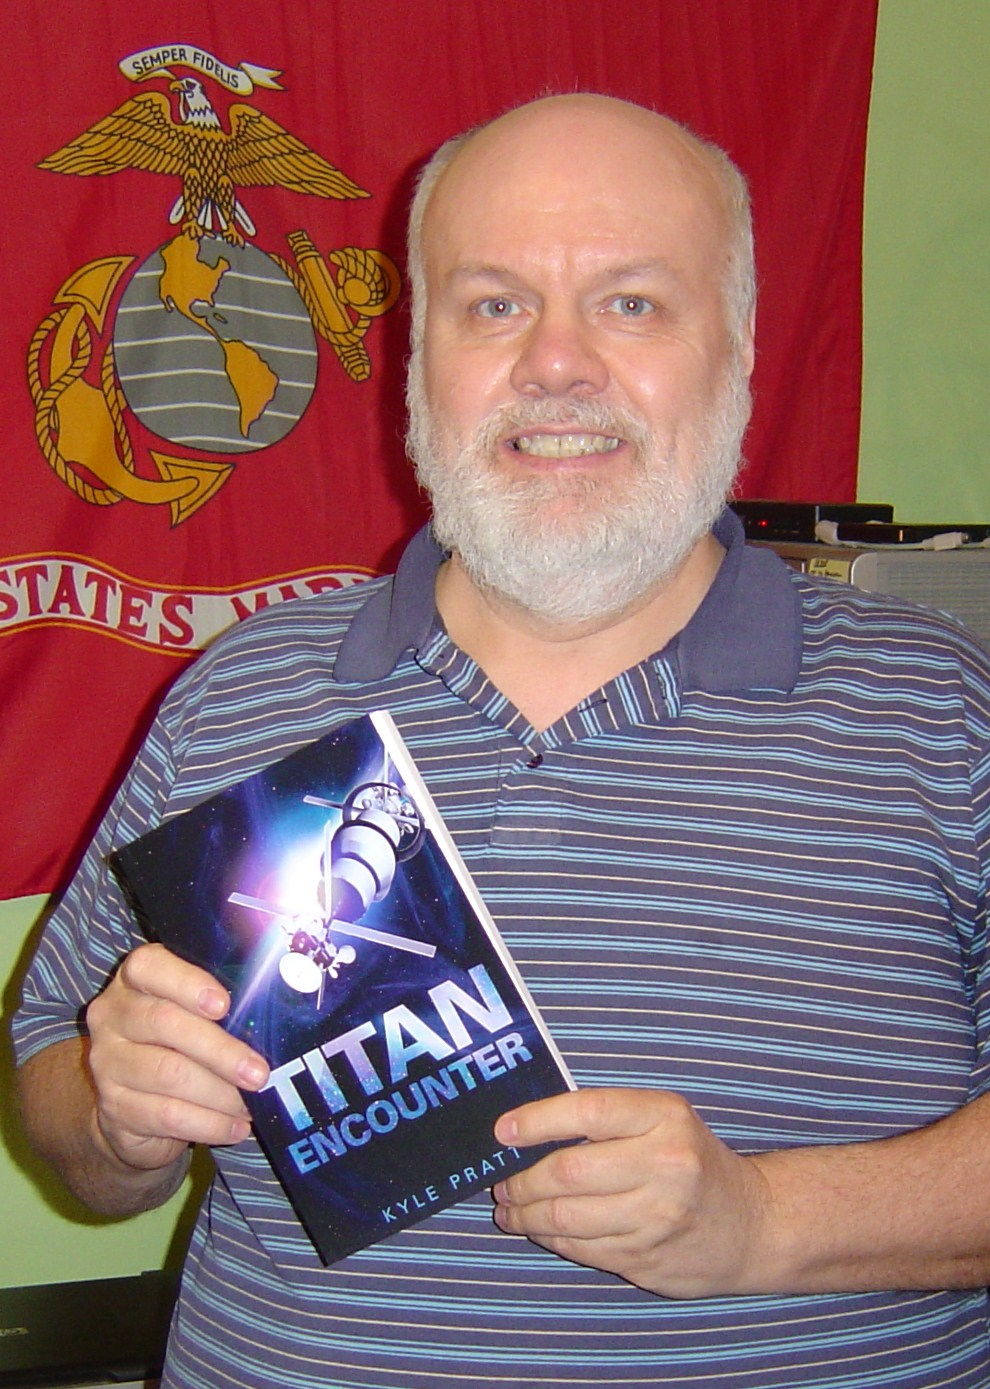 Dave Larson with a copy of Titan Encounter